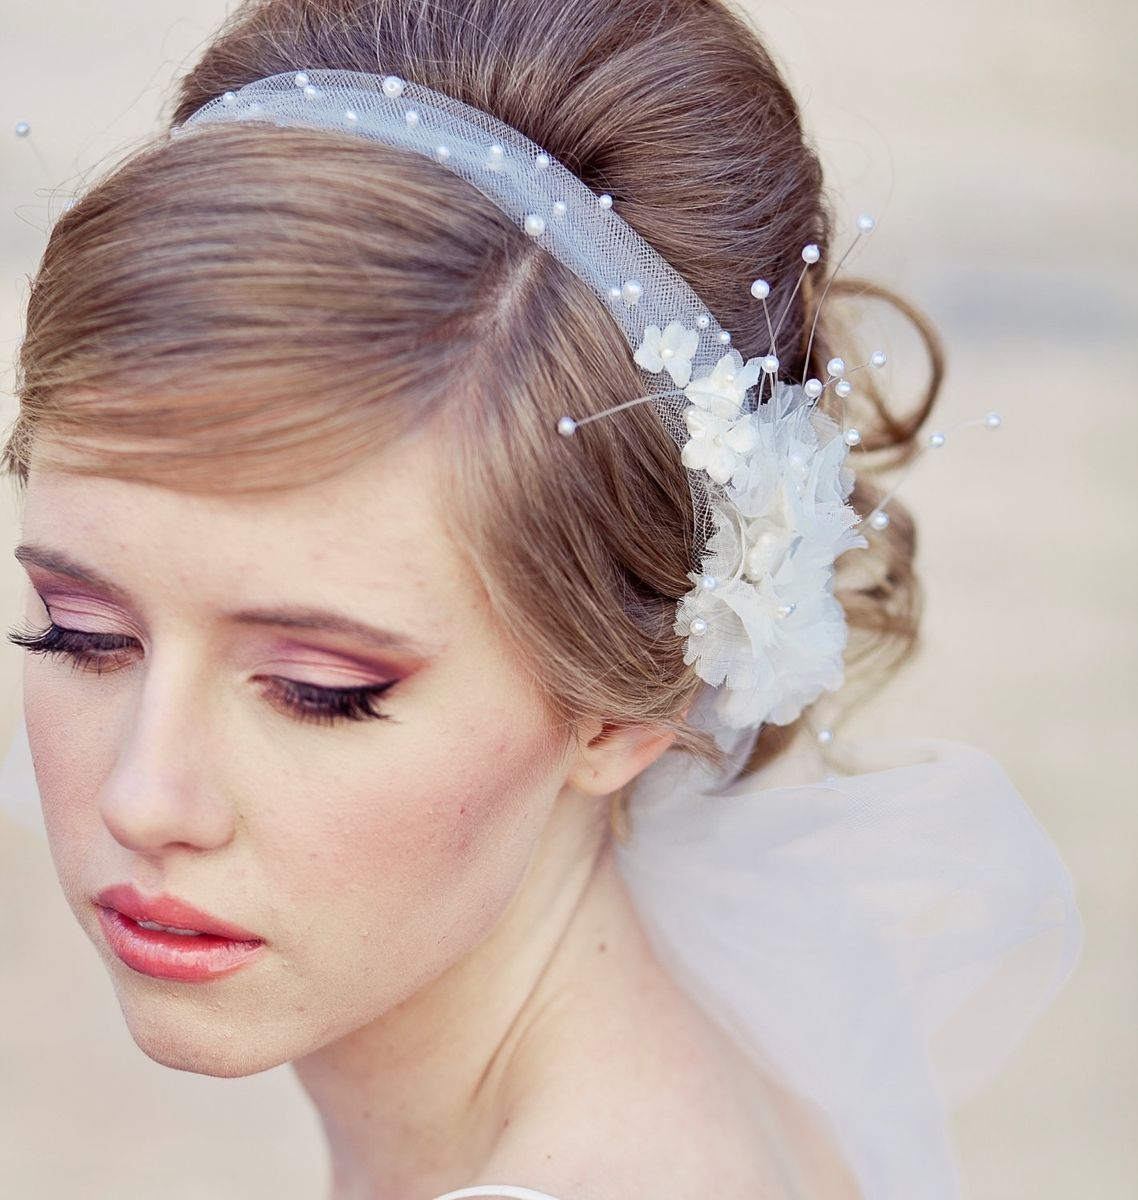 hand crafted wedding veil, tie headband of net and vintage flowers